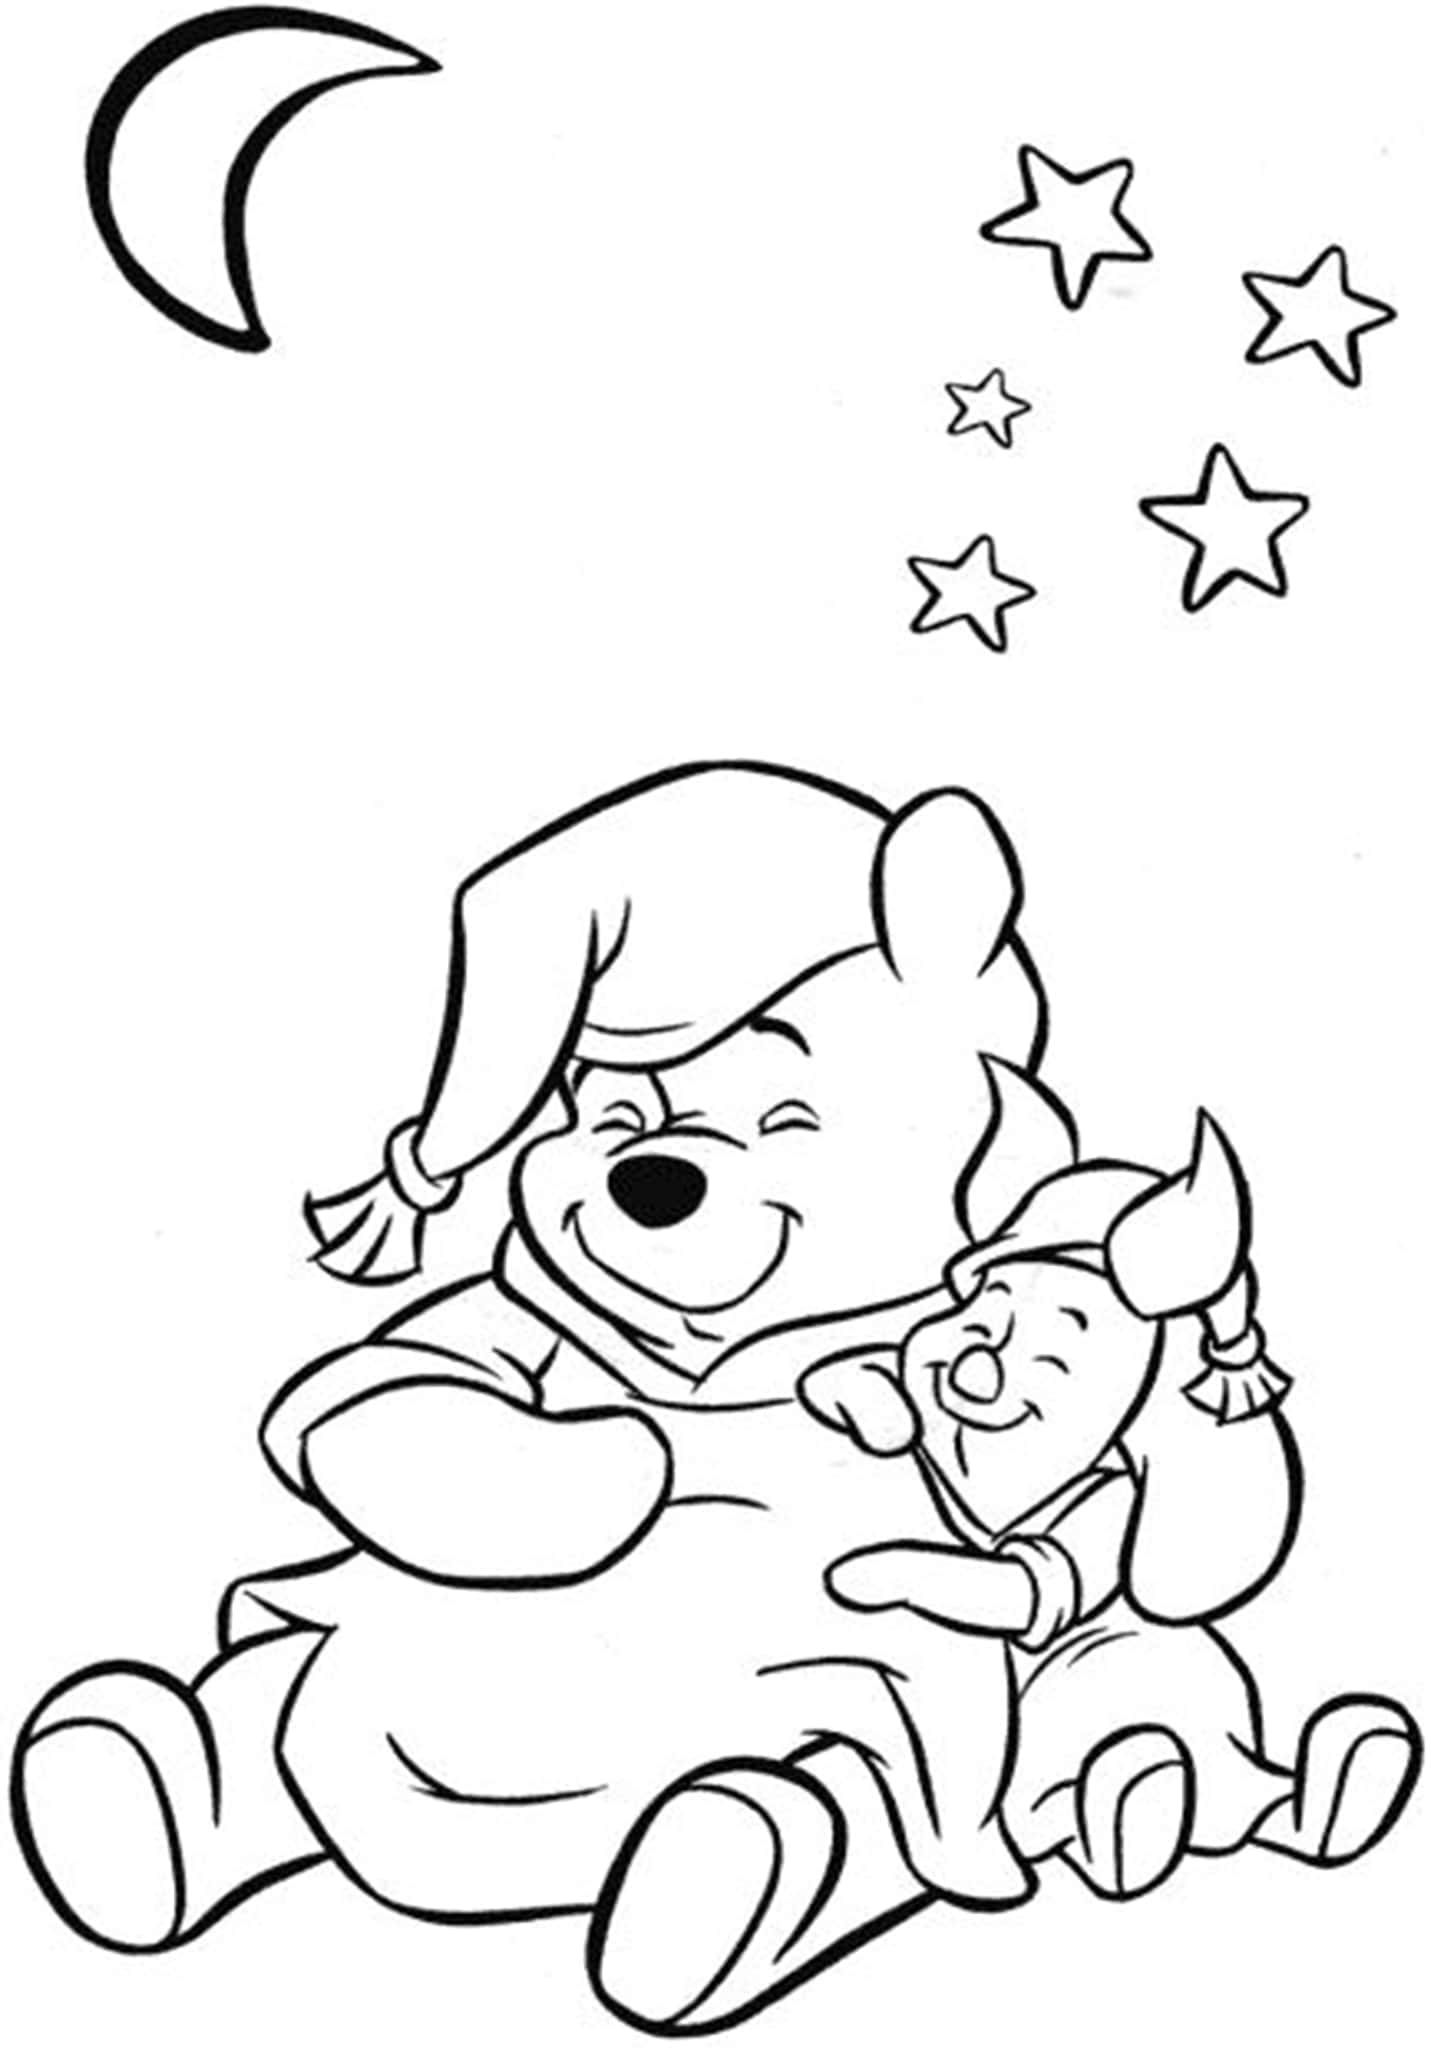 Free Easy To Print Winnie The Pooh Coloring Pages Disney Coloring Pages Cartoon Coloring Pages Winnie The Pooh Drawing